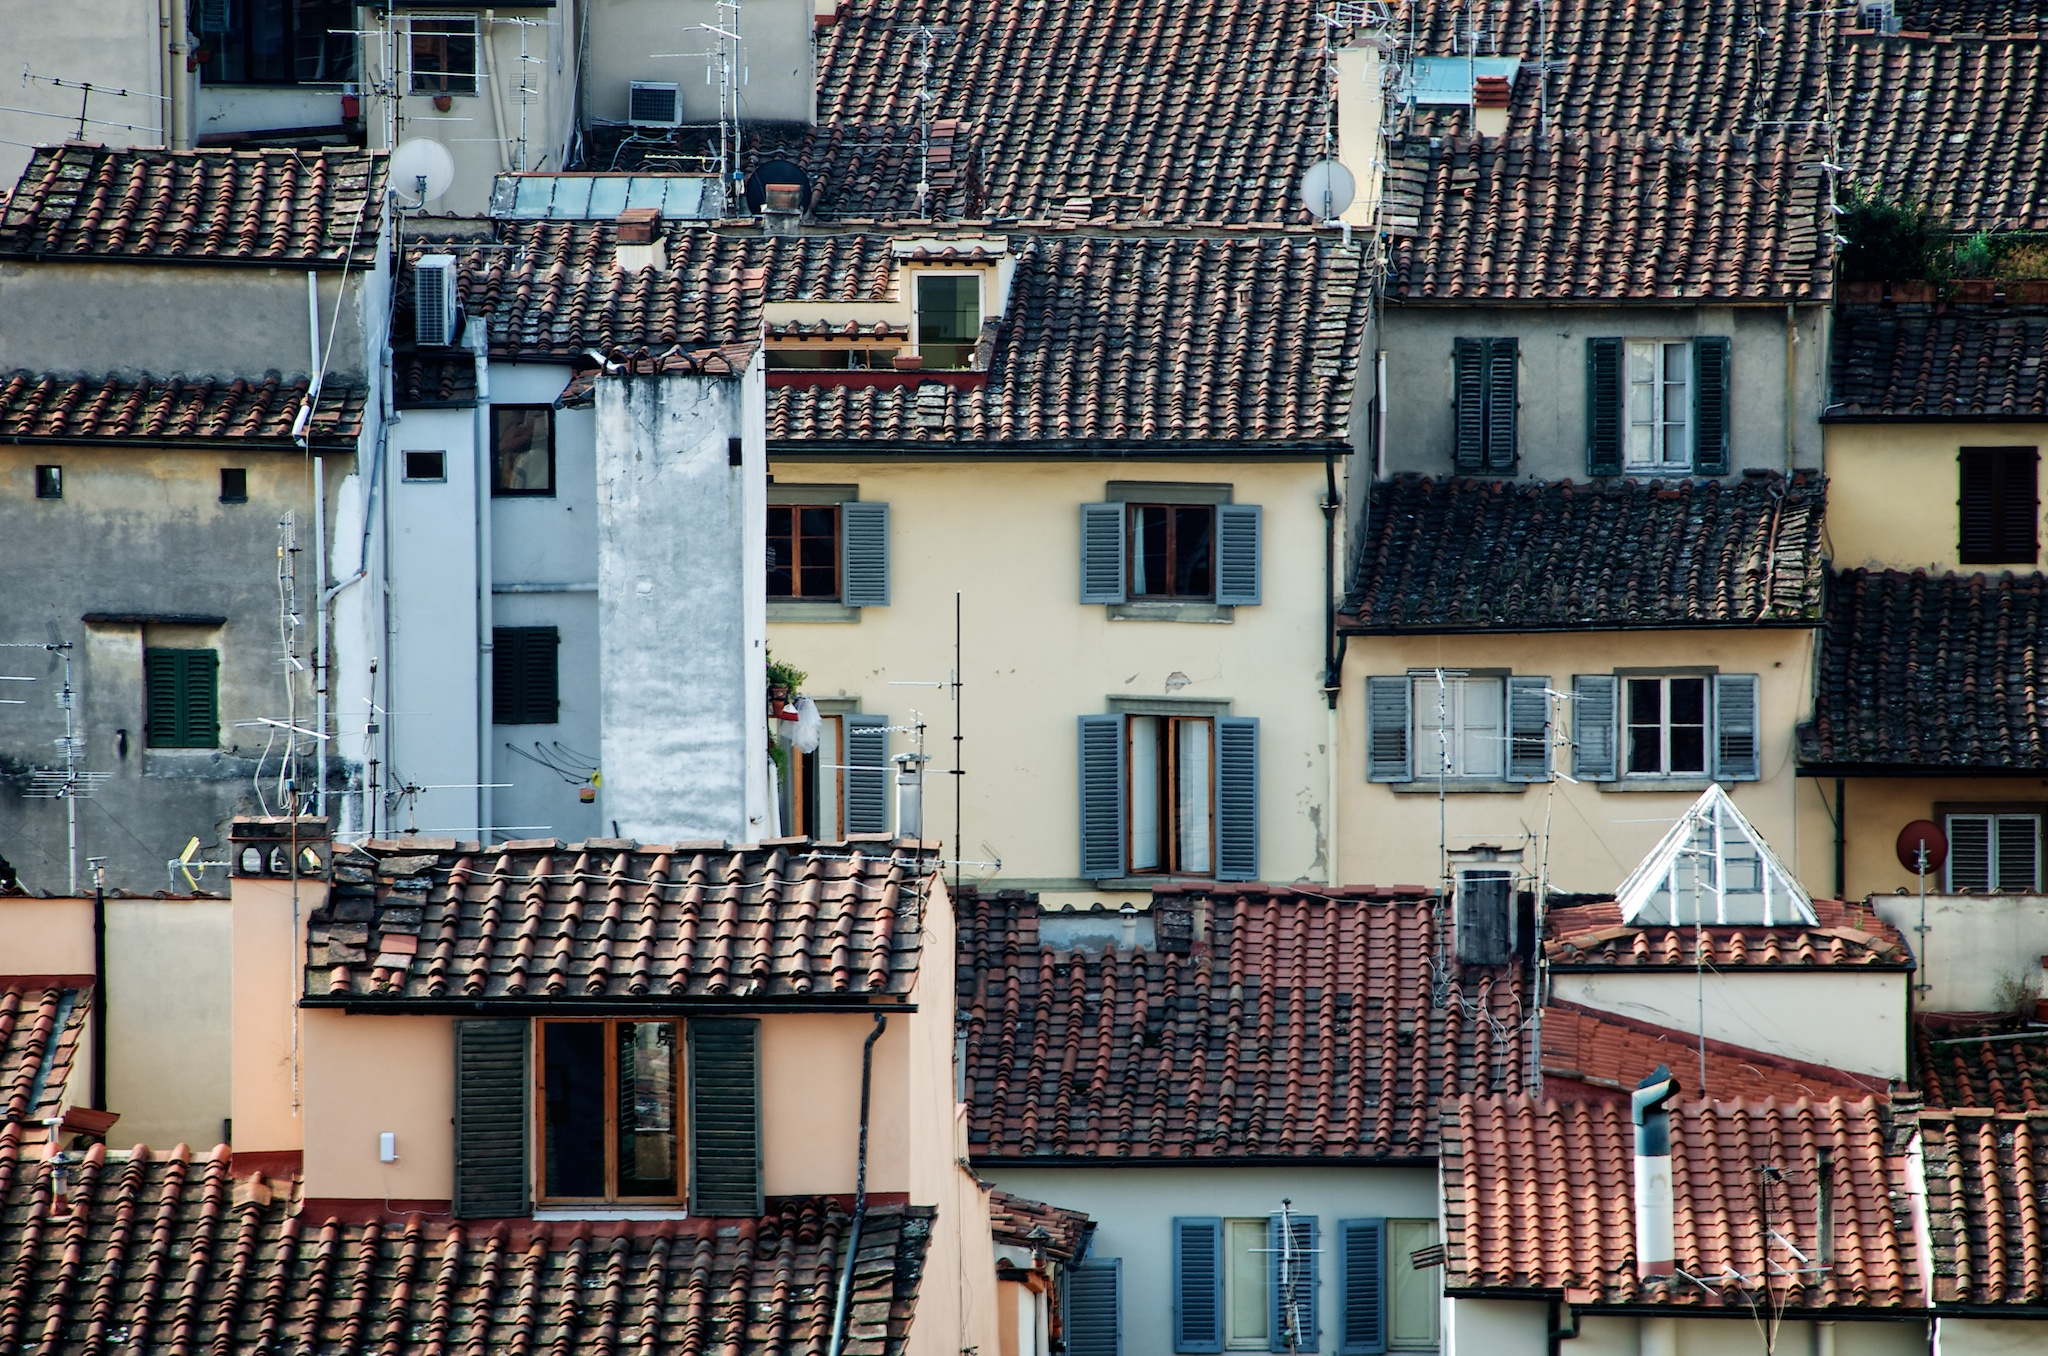 Tile Rooftops, Florence, Italy